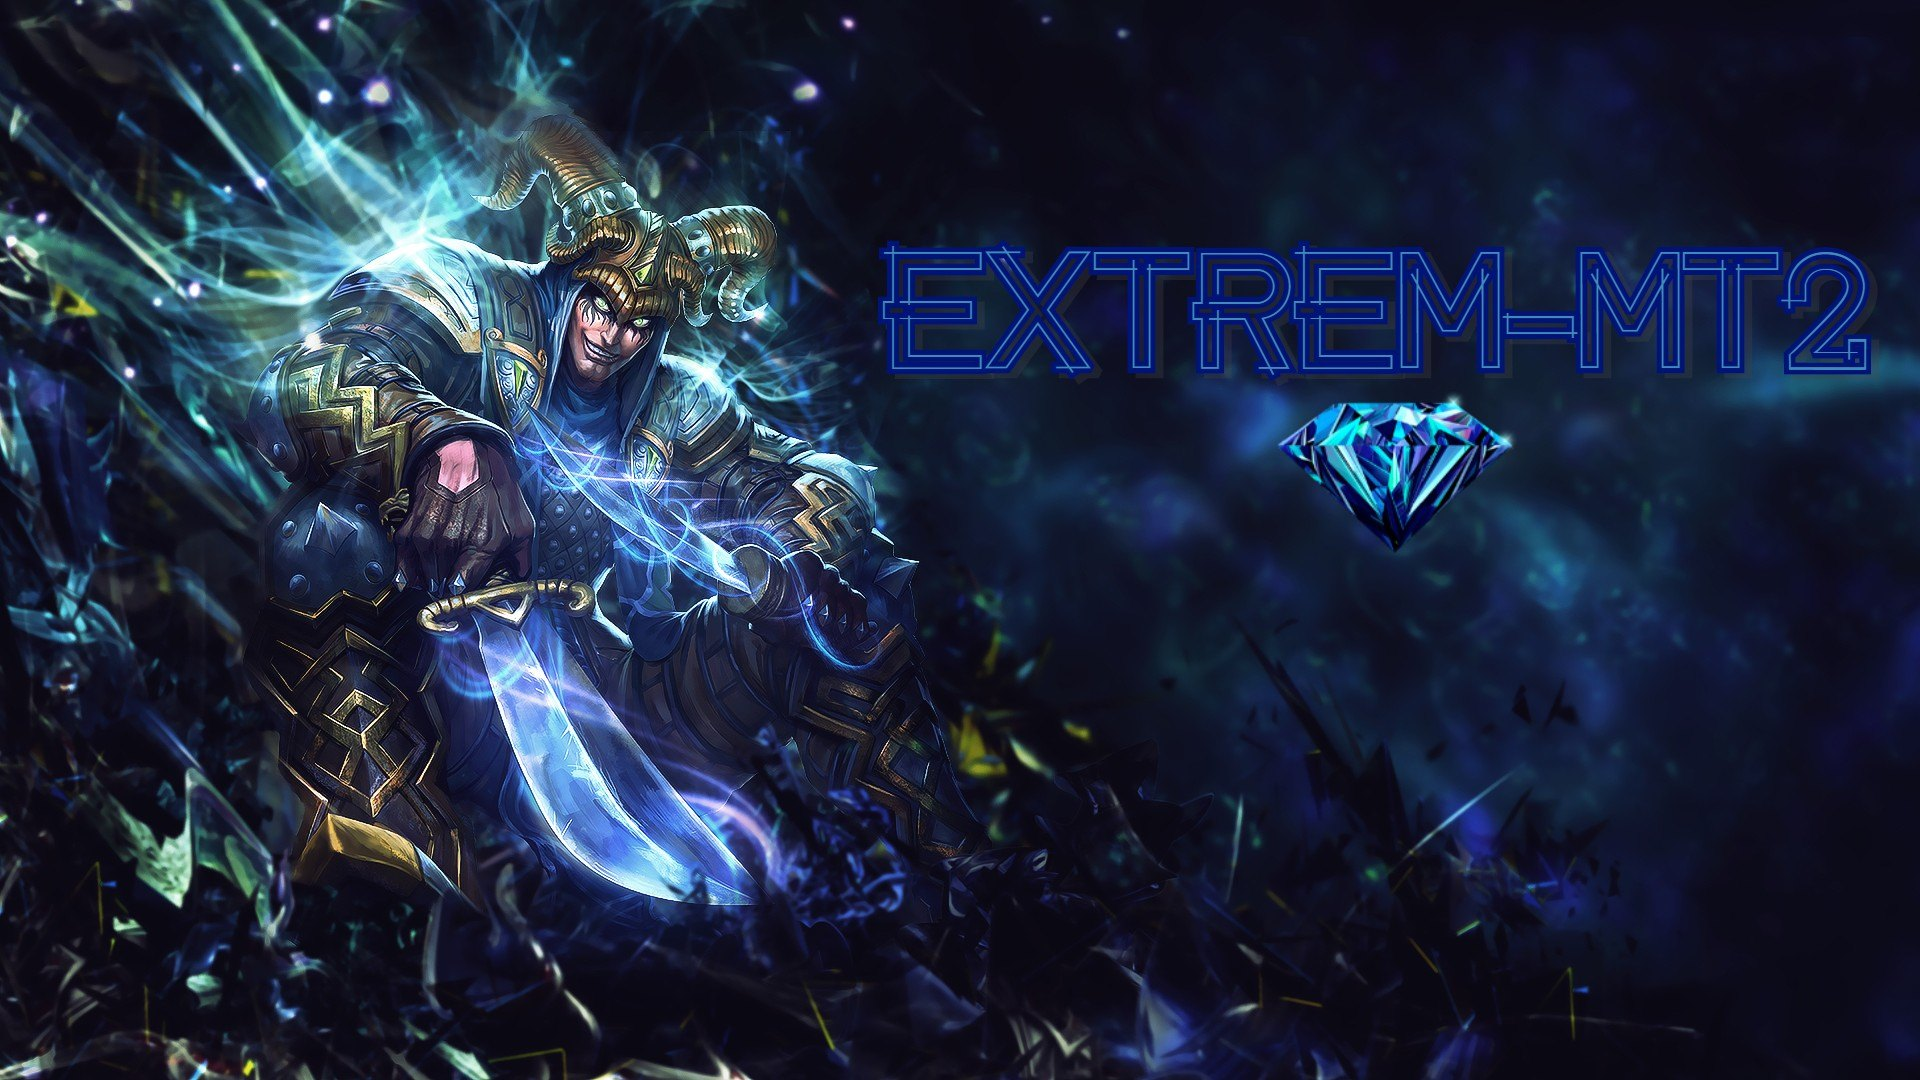 ExtremMT2